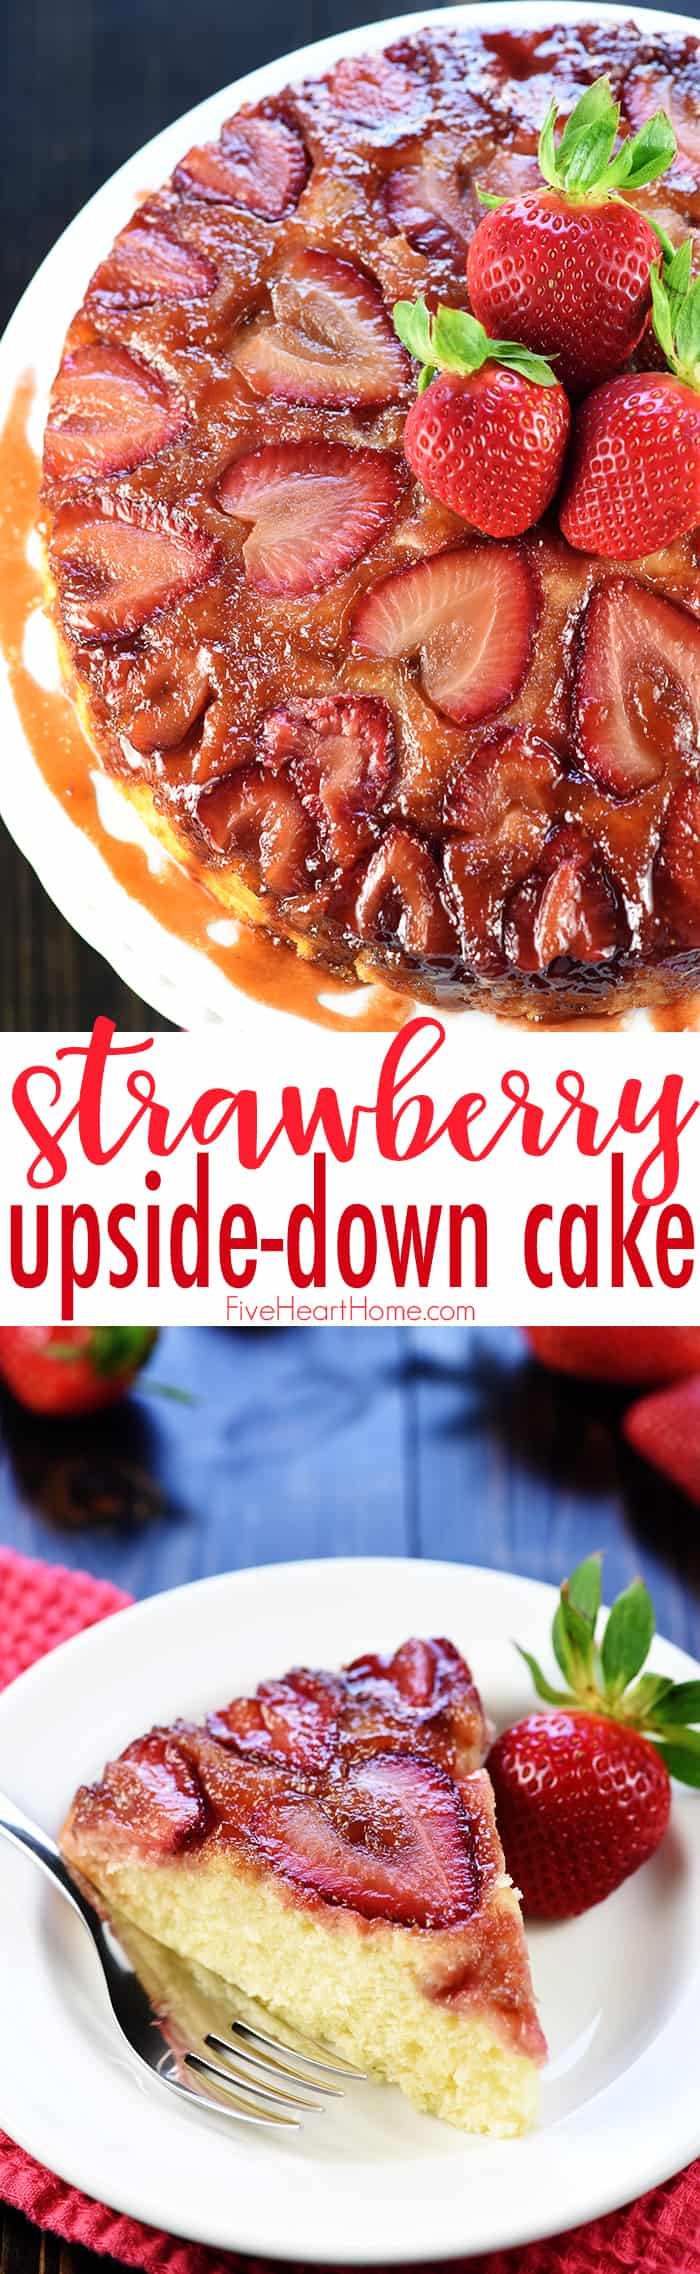 Strawberry Upside-Down Cake ~ a delicious twist on a classic recipe, showcasing fresh strawberries in place of pineapple for an easy spring or summer dessert! | FiveHeartHome.com